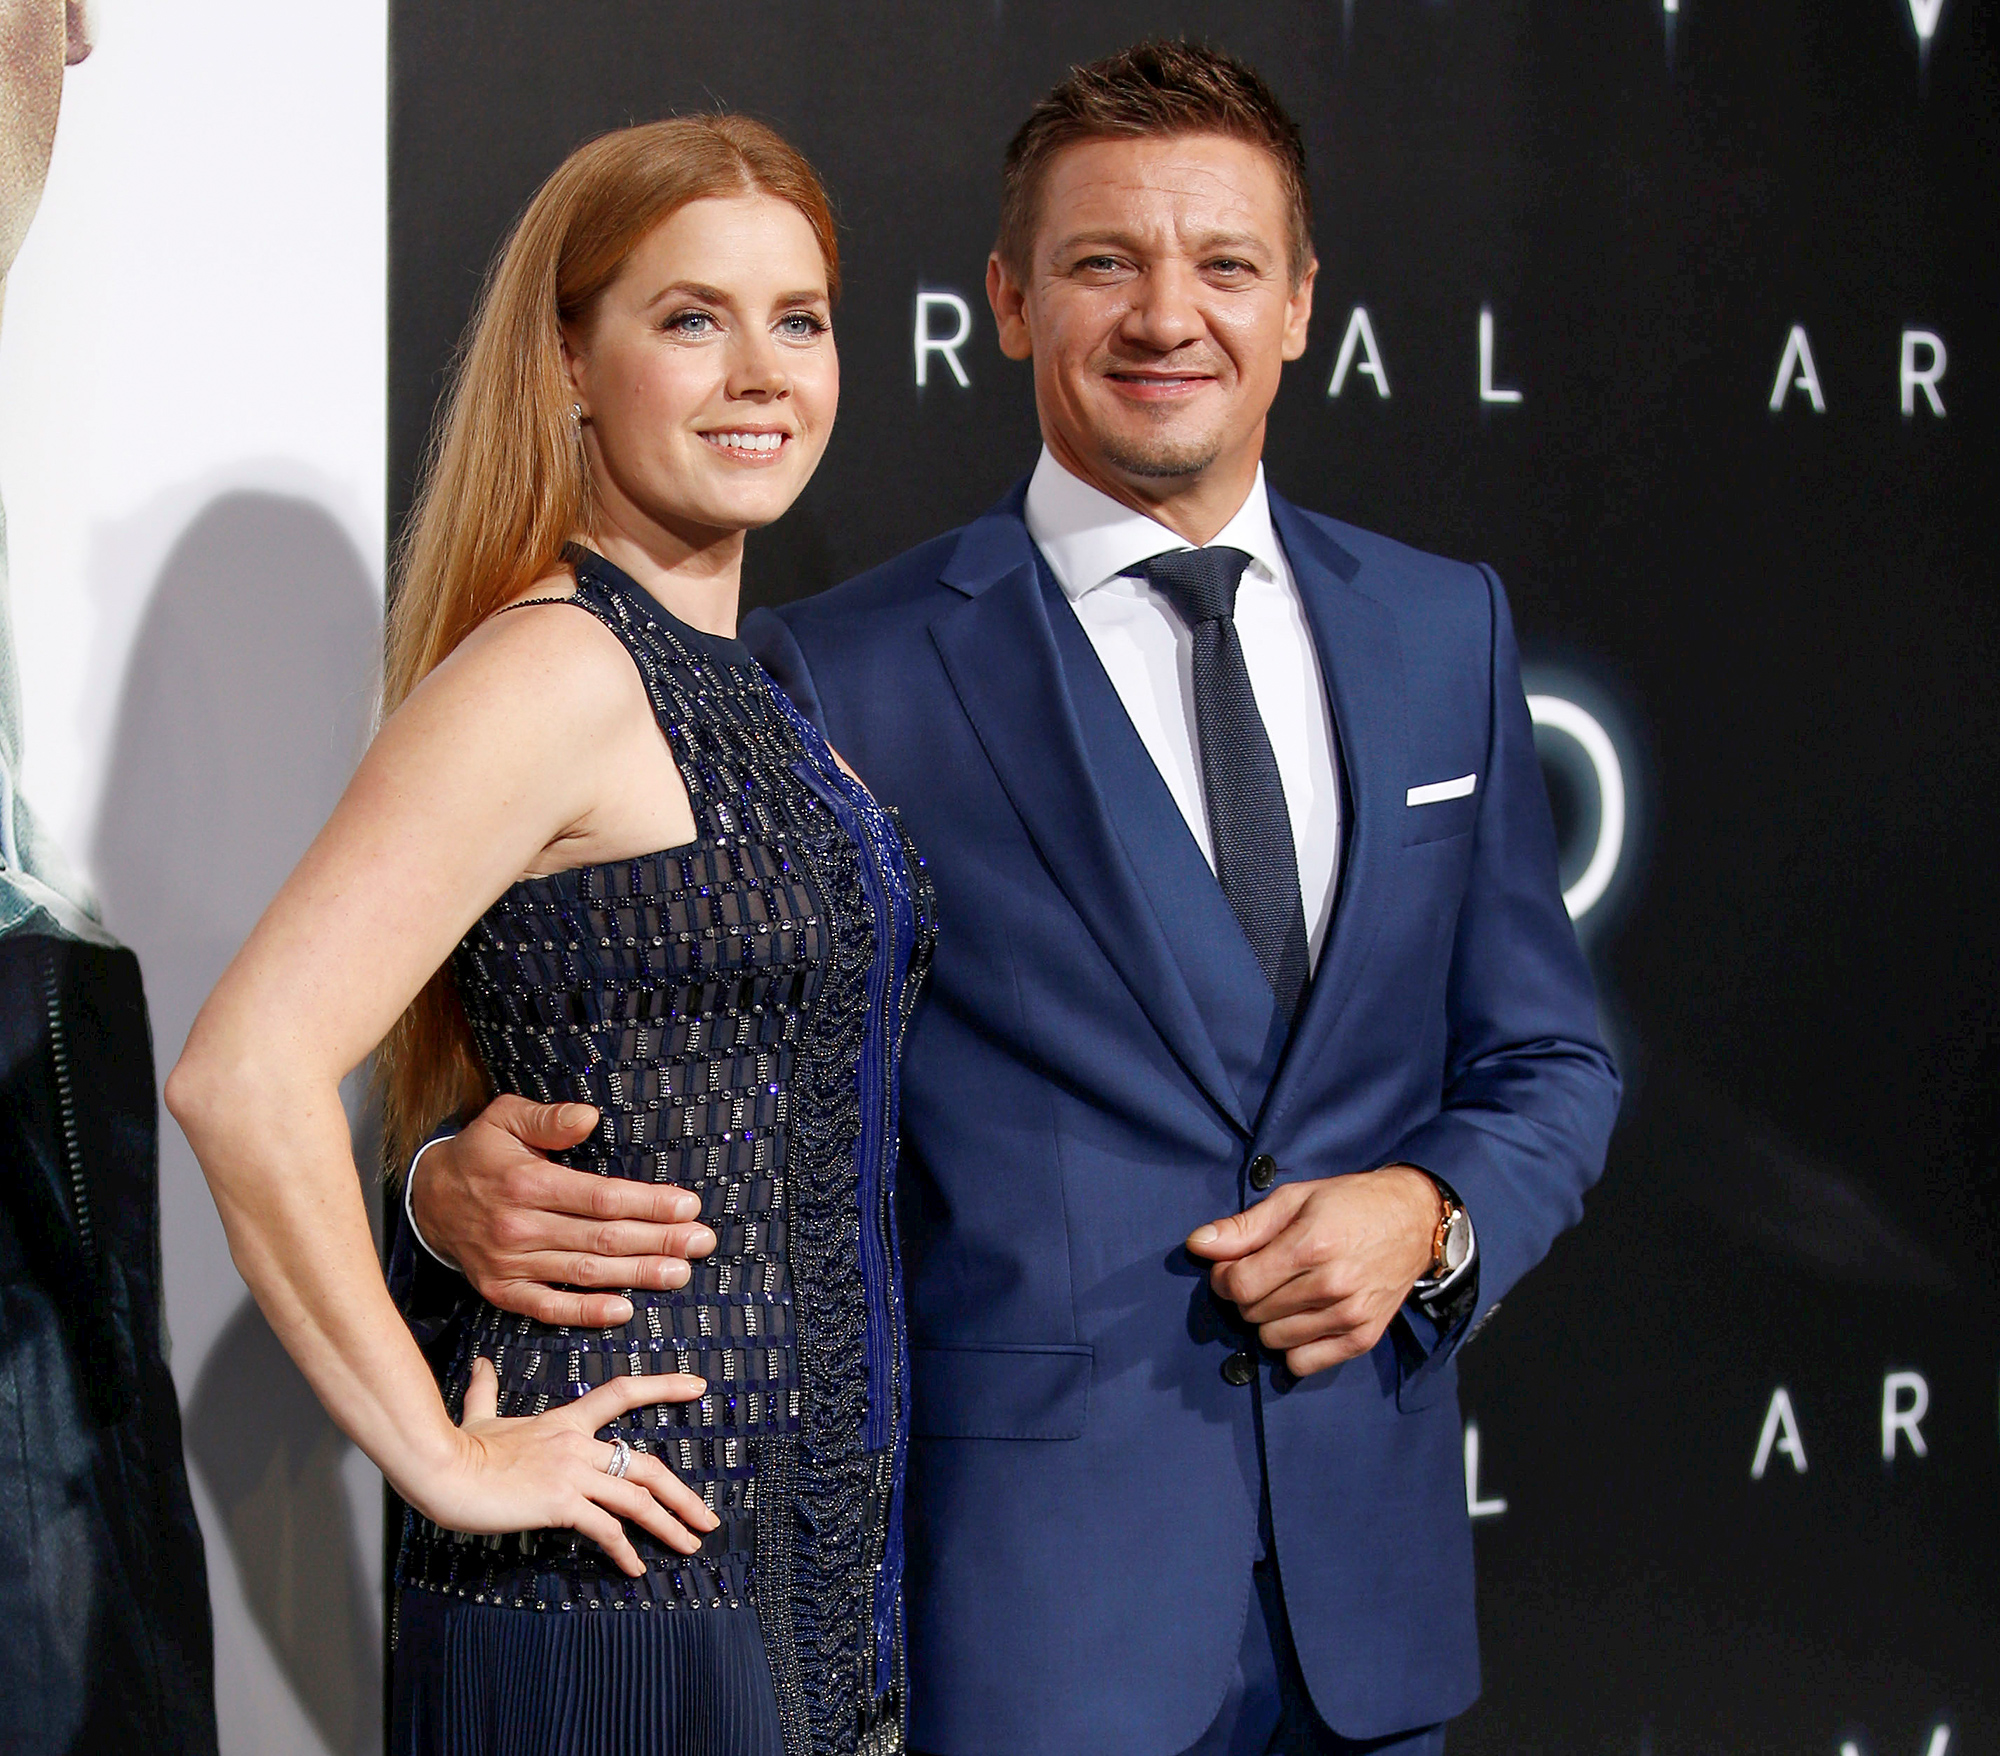 Celebrities attend the premiere of the film 'Arrival' in Los Angeles